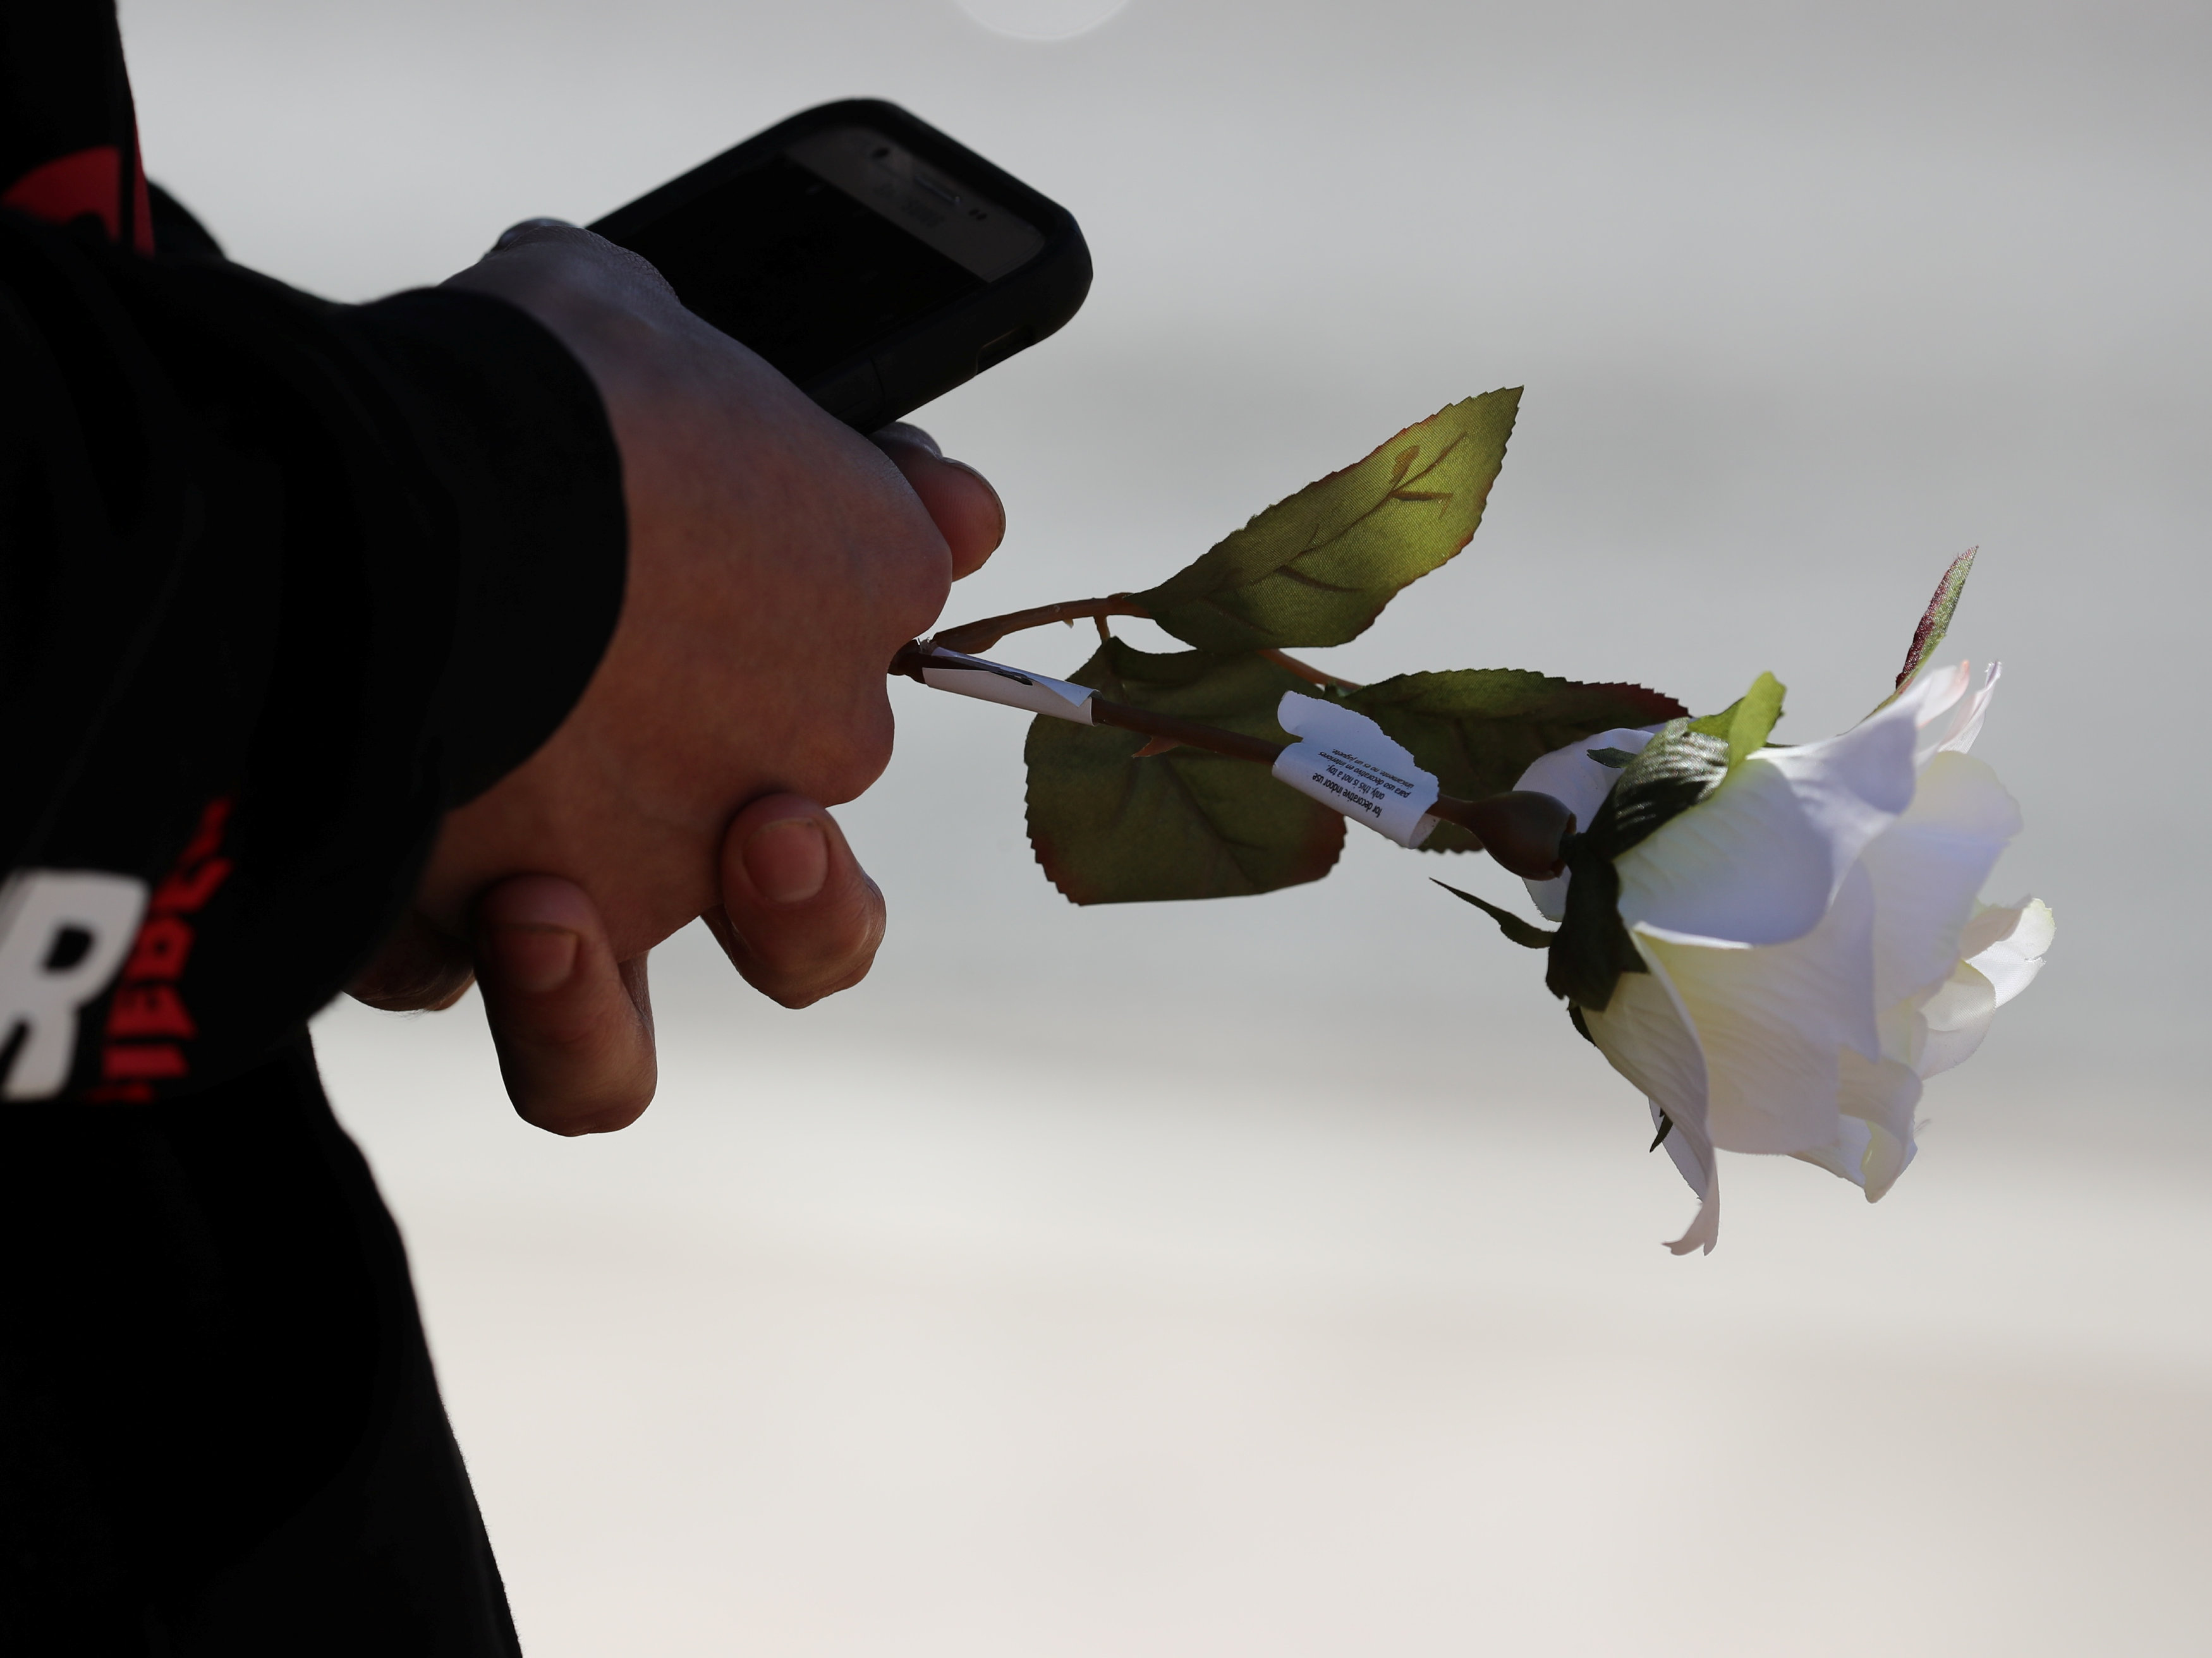 A man holds a white rose outside a police perimeter near the scene of the Route 91 music festival mass shooting in Las Vegas, Nevada, U.S., October 2, 2017. REUTERS/Mike Blake